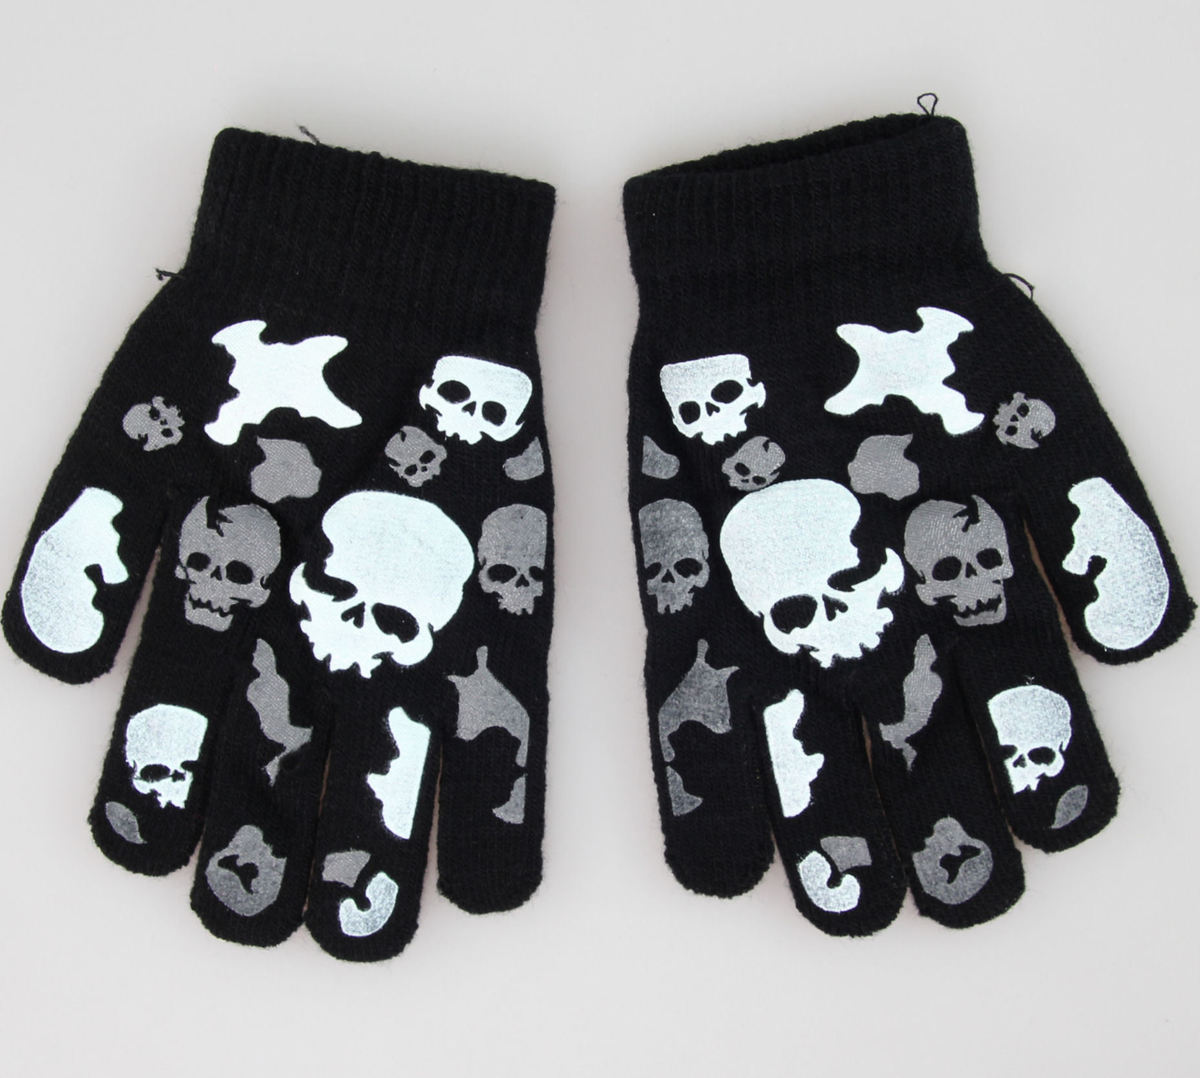 rukavice Skull - Black/White - 1021-101